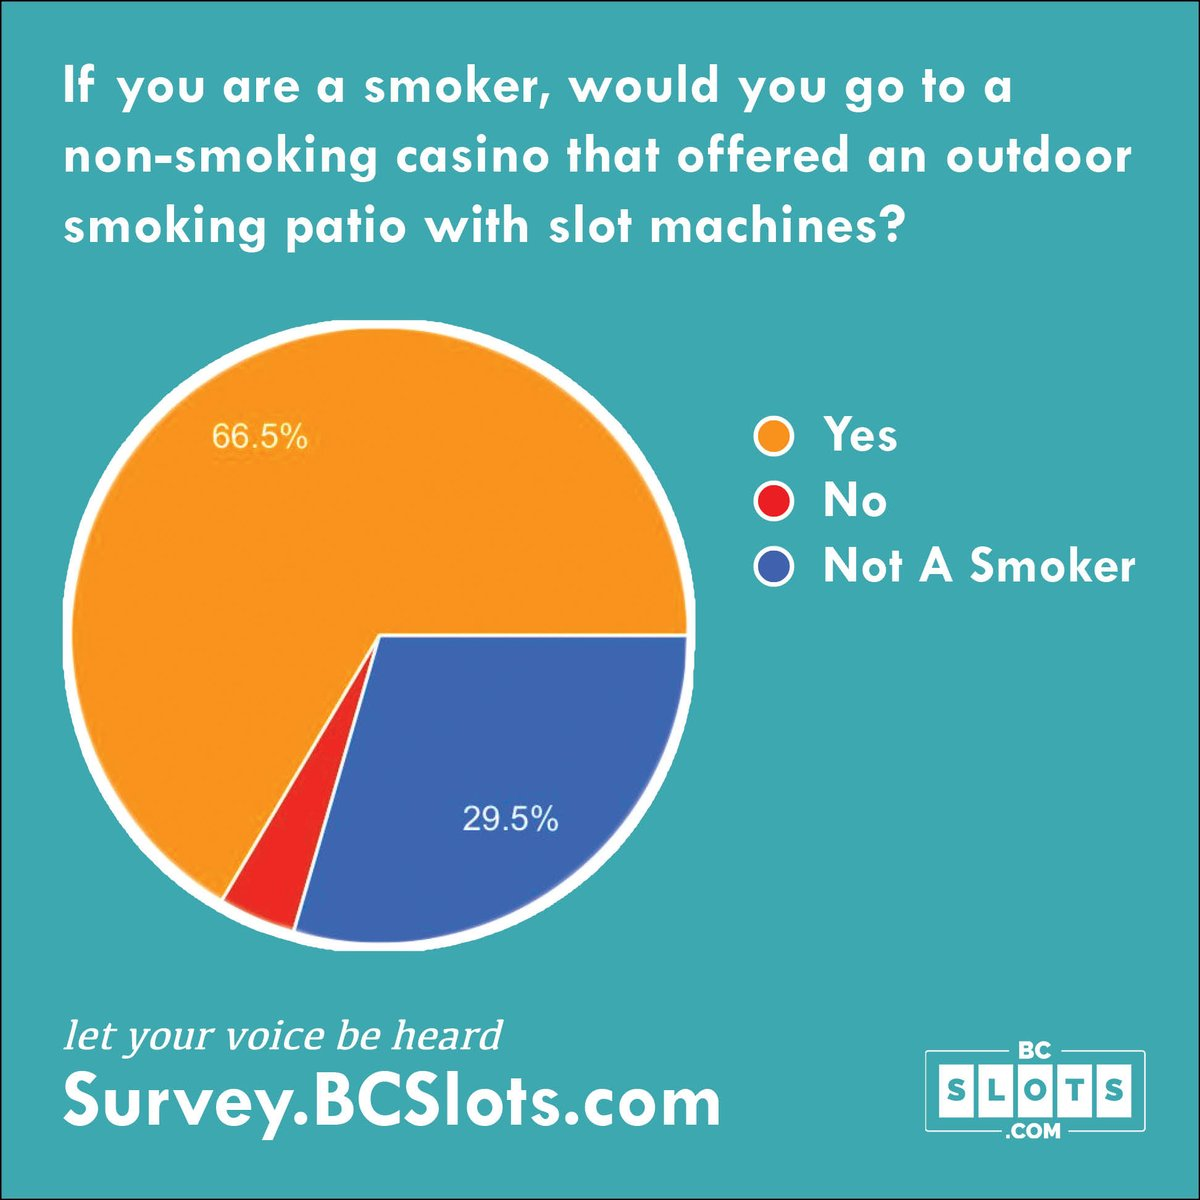 We polled our fan club - only 1 in 5 smoke & a whopping 88% of SMOKERS would choose a Non-Smoking Casino w/ a smoking patio. If casinos cared about health, they'd make this change now. Read our blog & have your say by taking our survey! https://t.co/1sOop62Y2C  @CasinoSmokefree https://t.co/jKqej9duZy